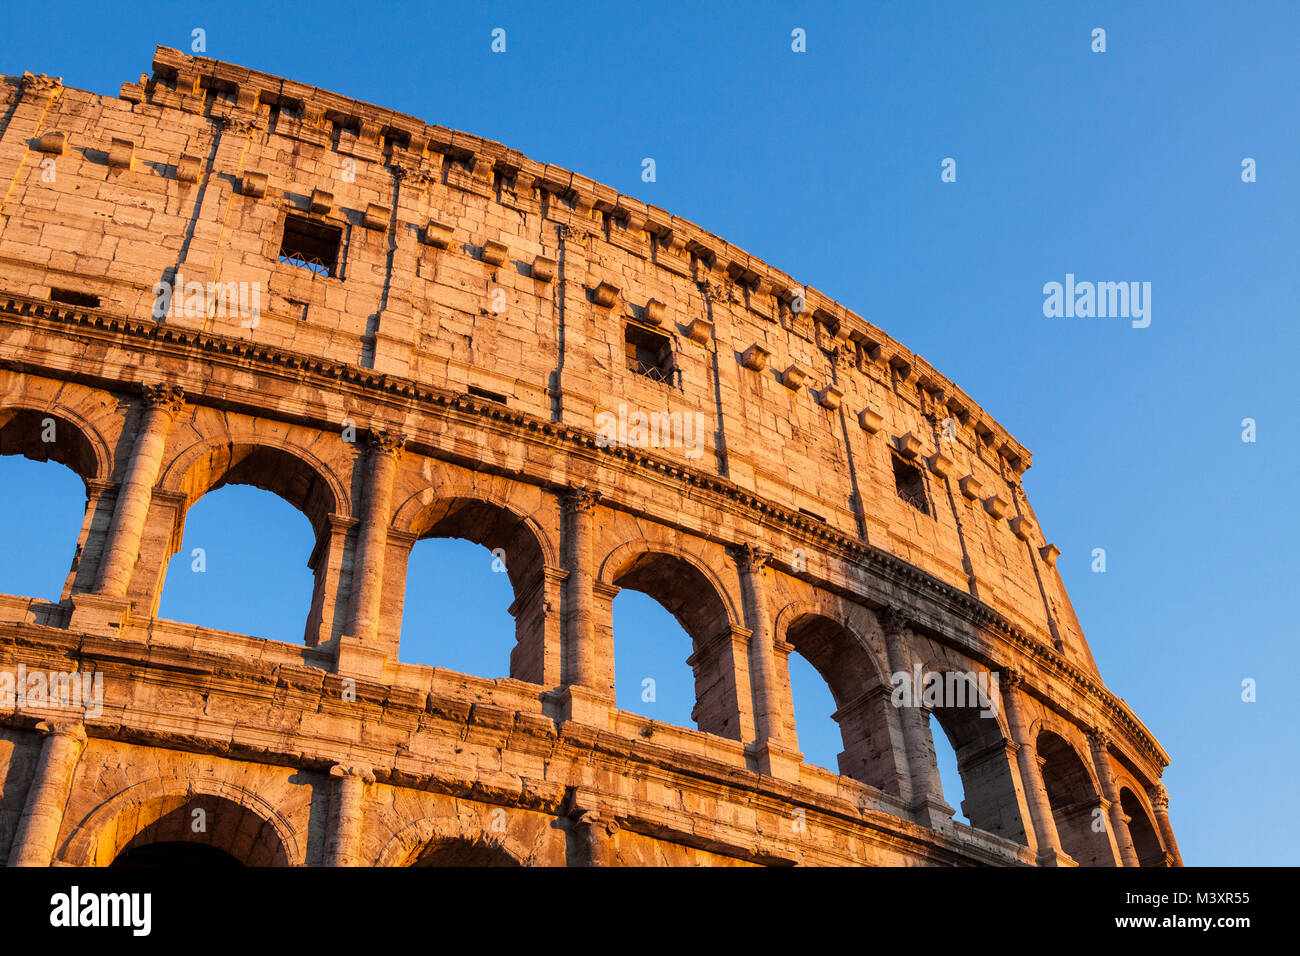 Image of historical Colosseum in Rome, Italy Stock Photo